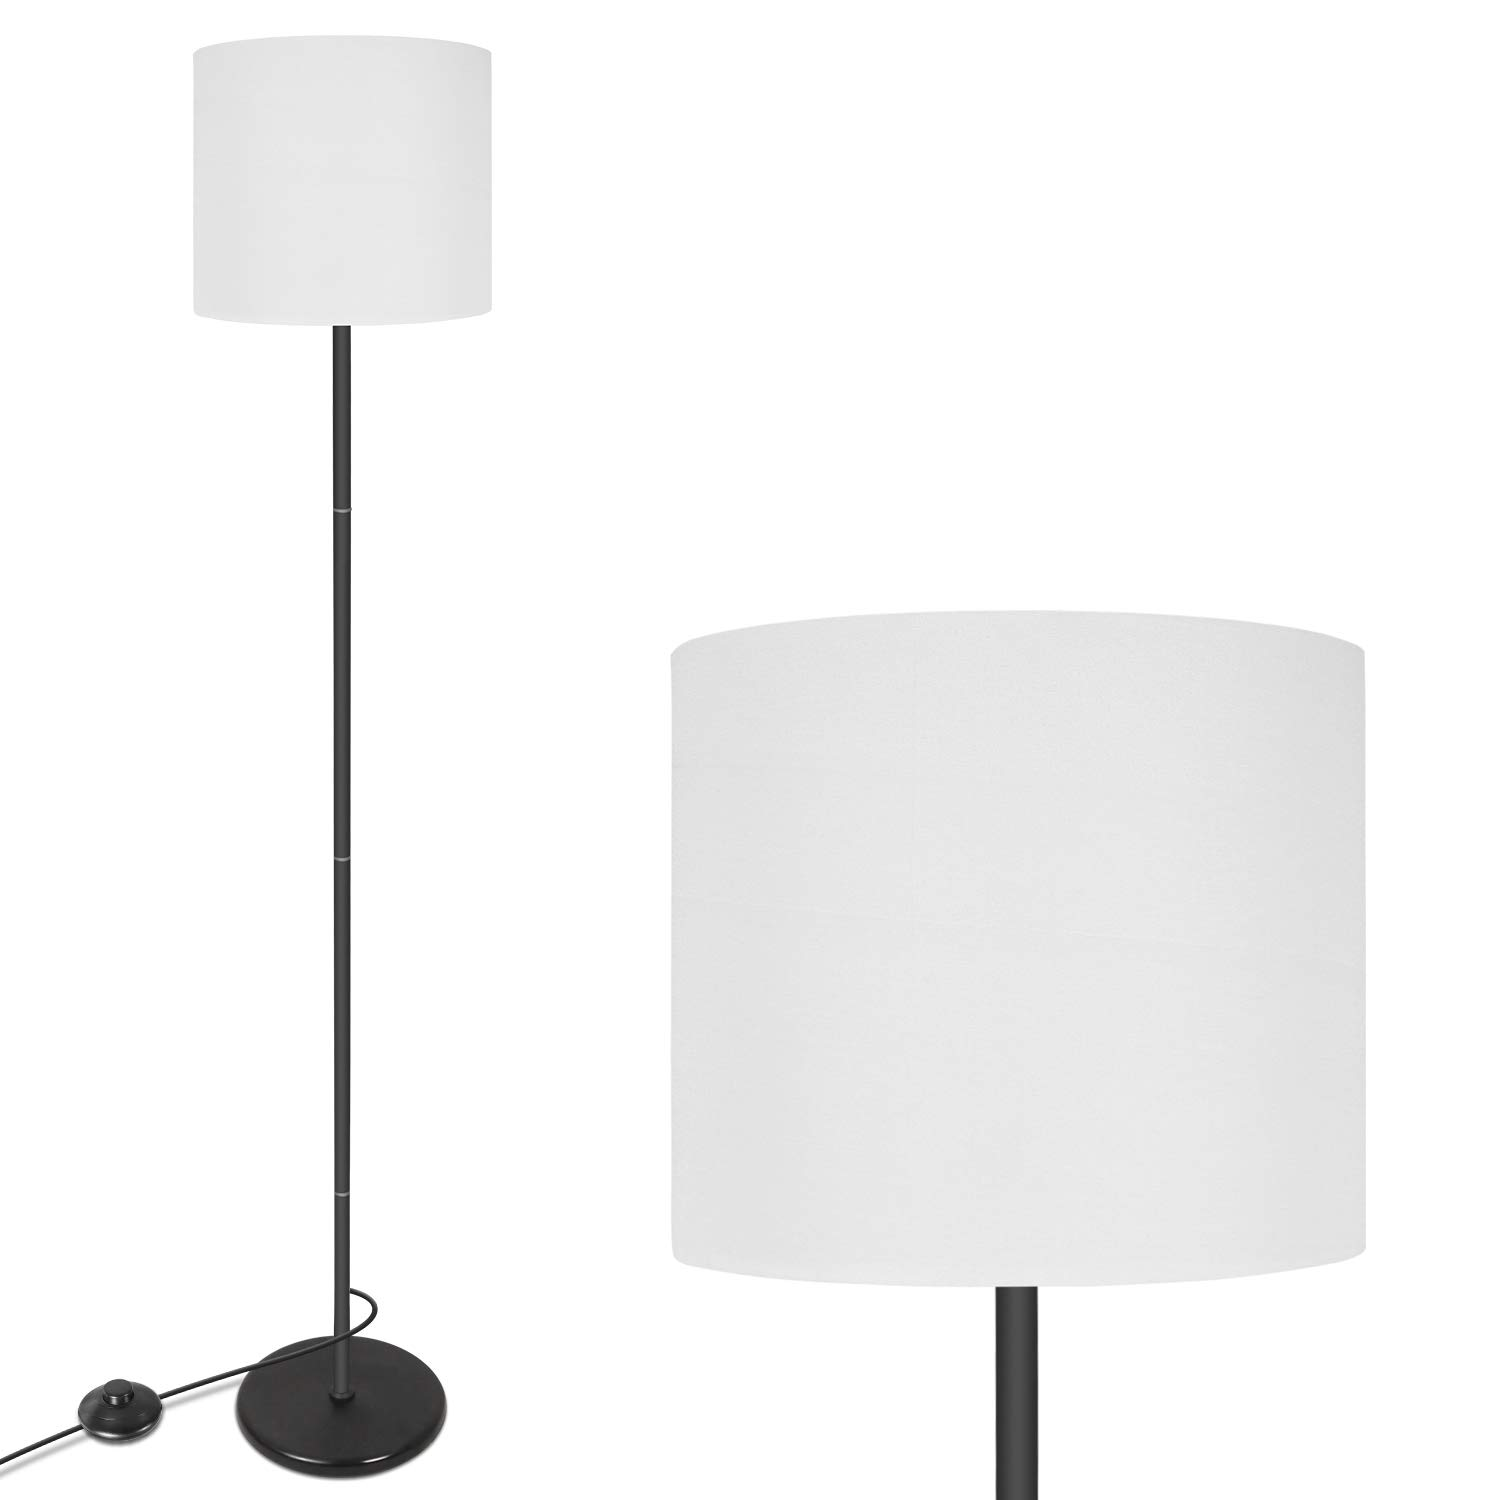 LED Floor Lamp Simple Design, Modern Standing Lamp with Hanging Lamp Shade, Bedroom & Living Room Stand Up LED Floor Lamp White(Without Bulb)